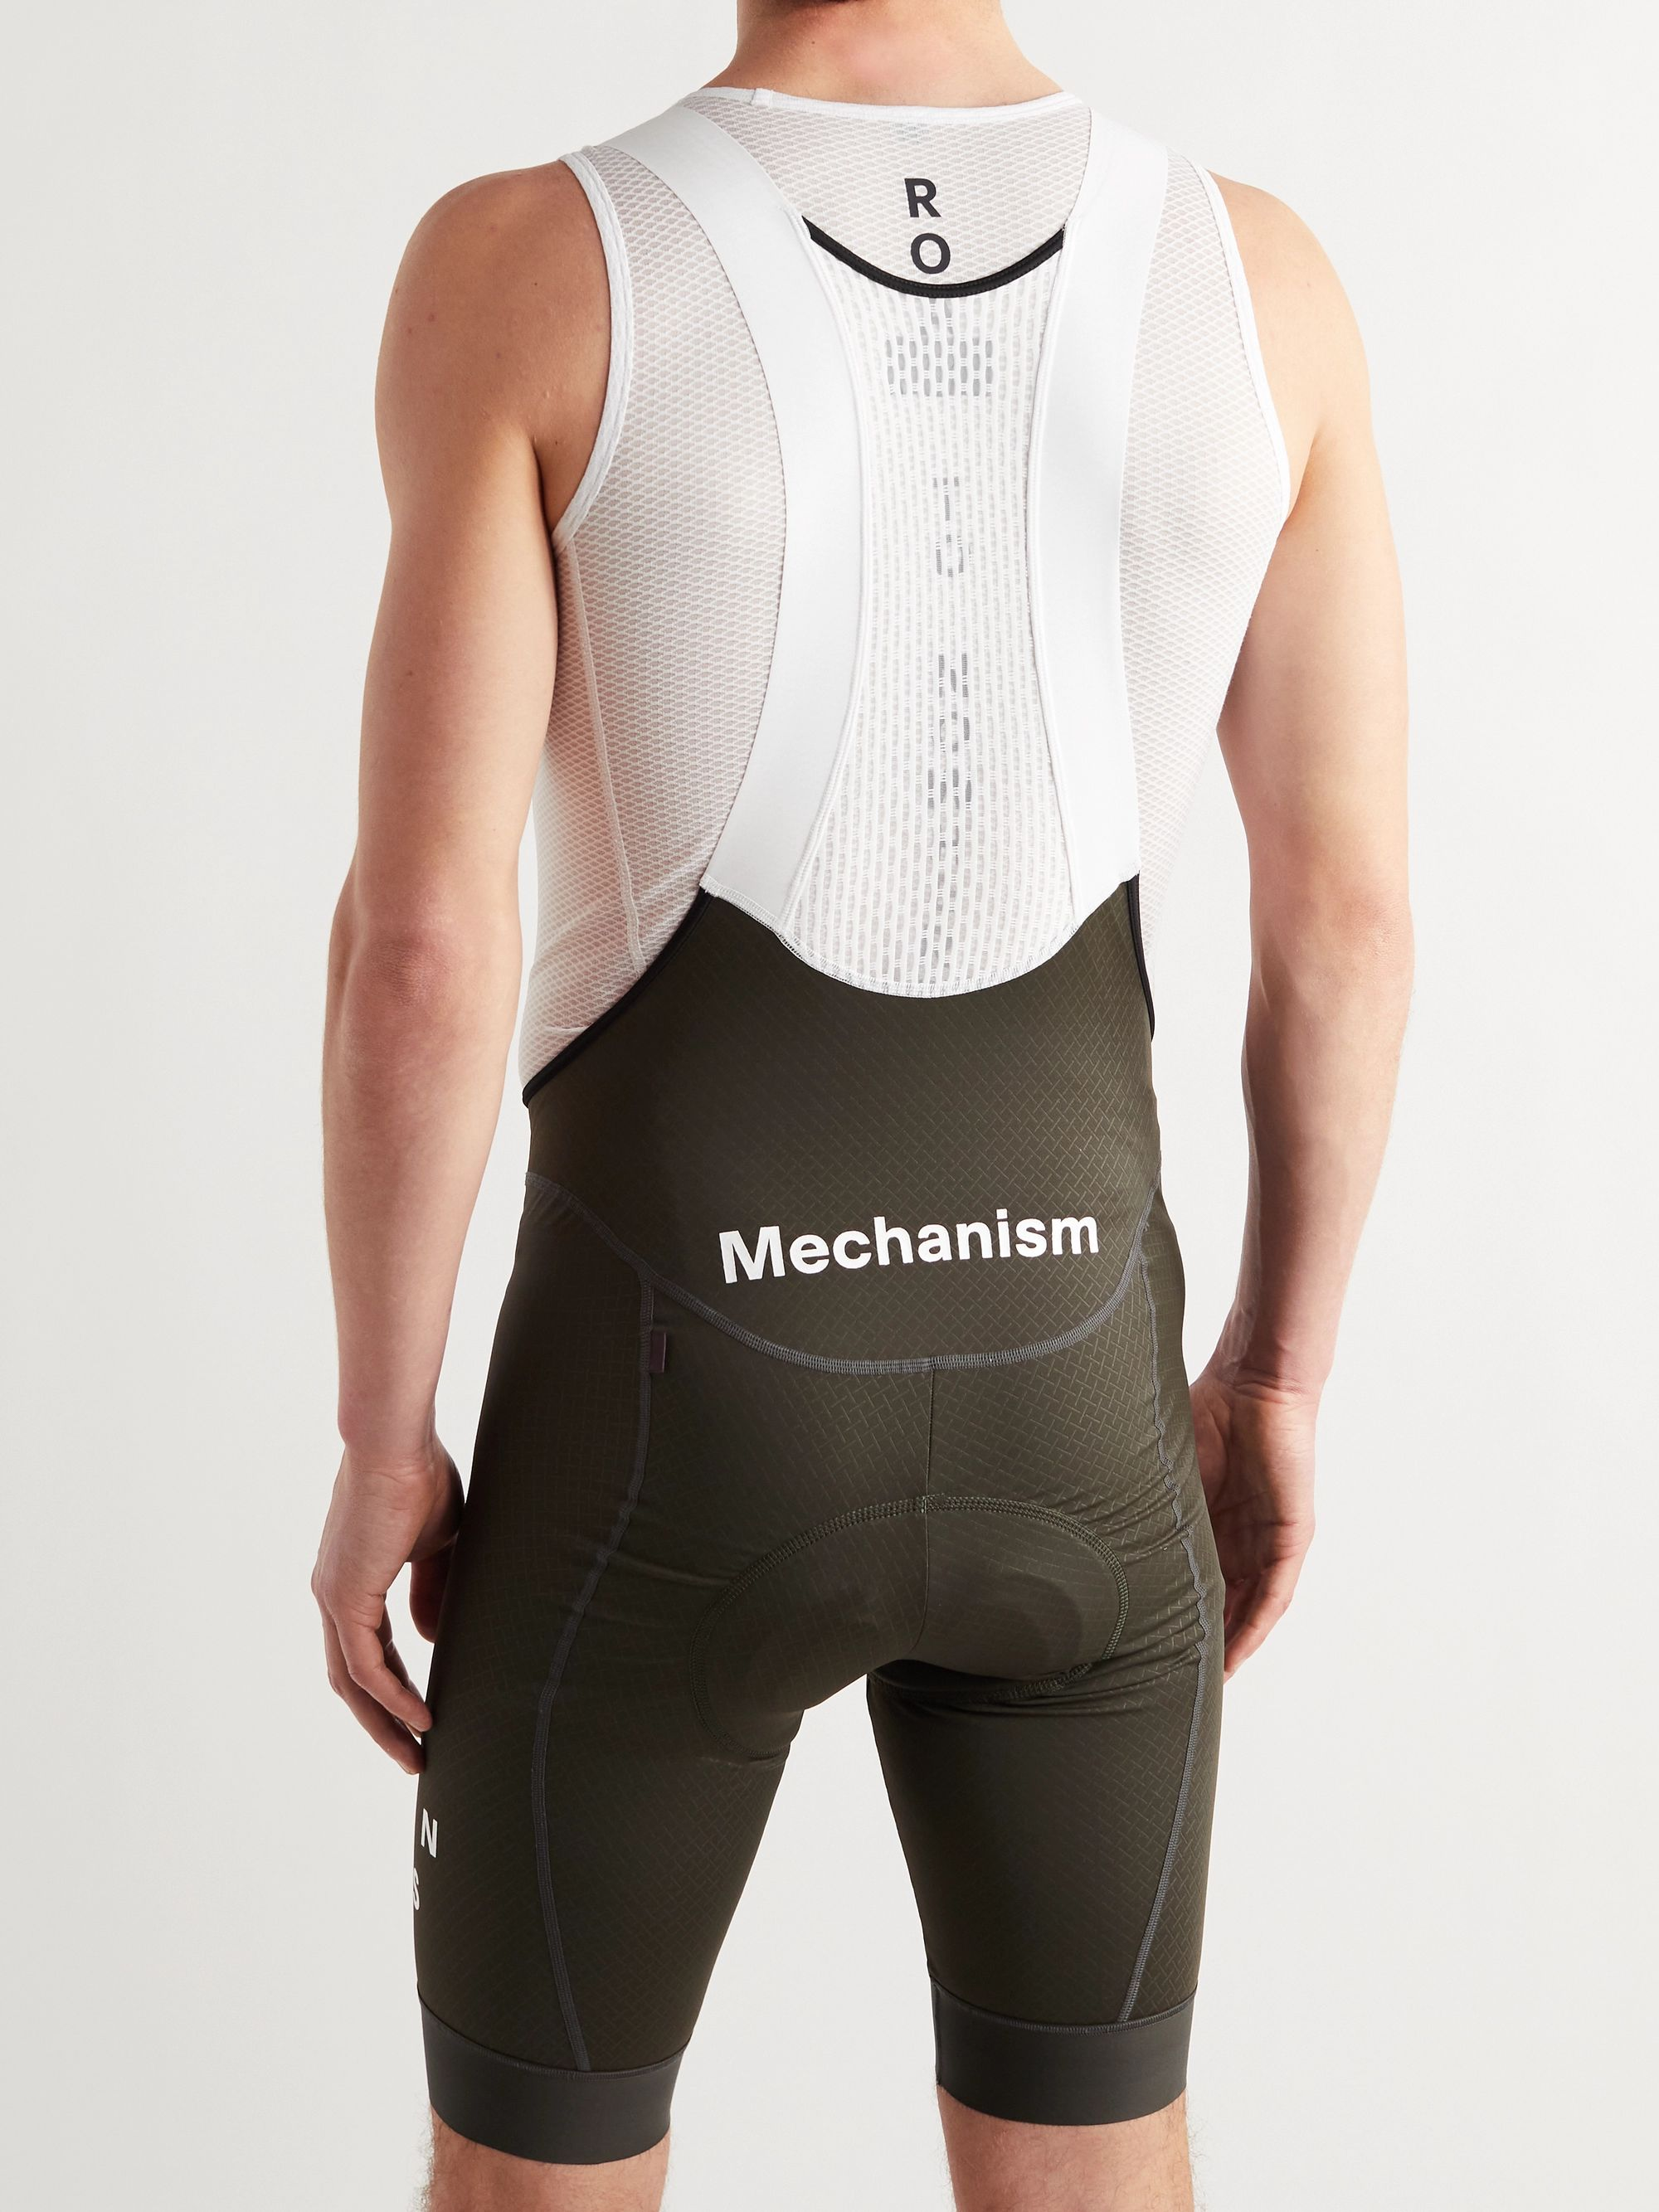 PAS NORMAL STUDIOS Mechanism Mesh-Panelled Stretch-Jersey Cycling Bib Shorts